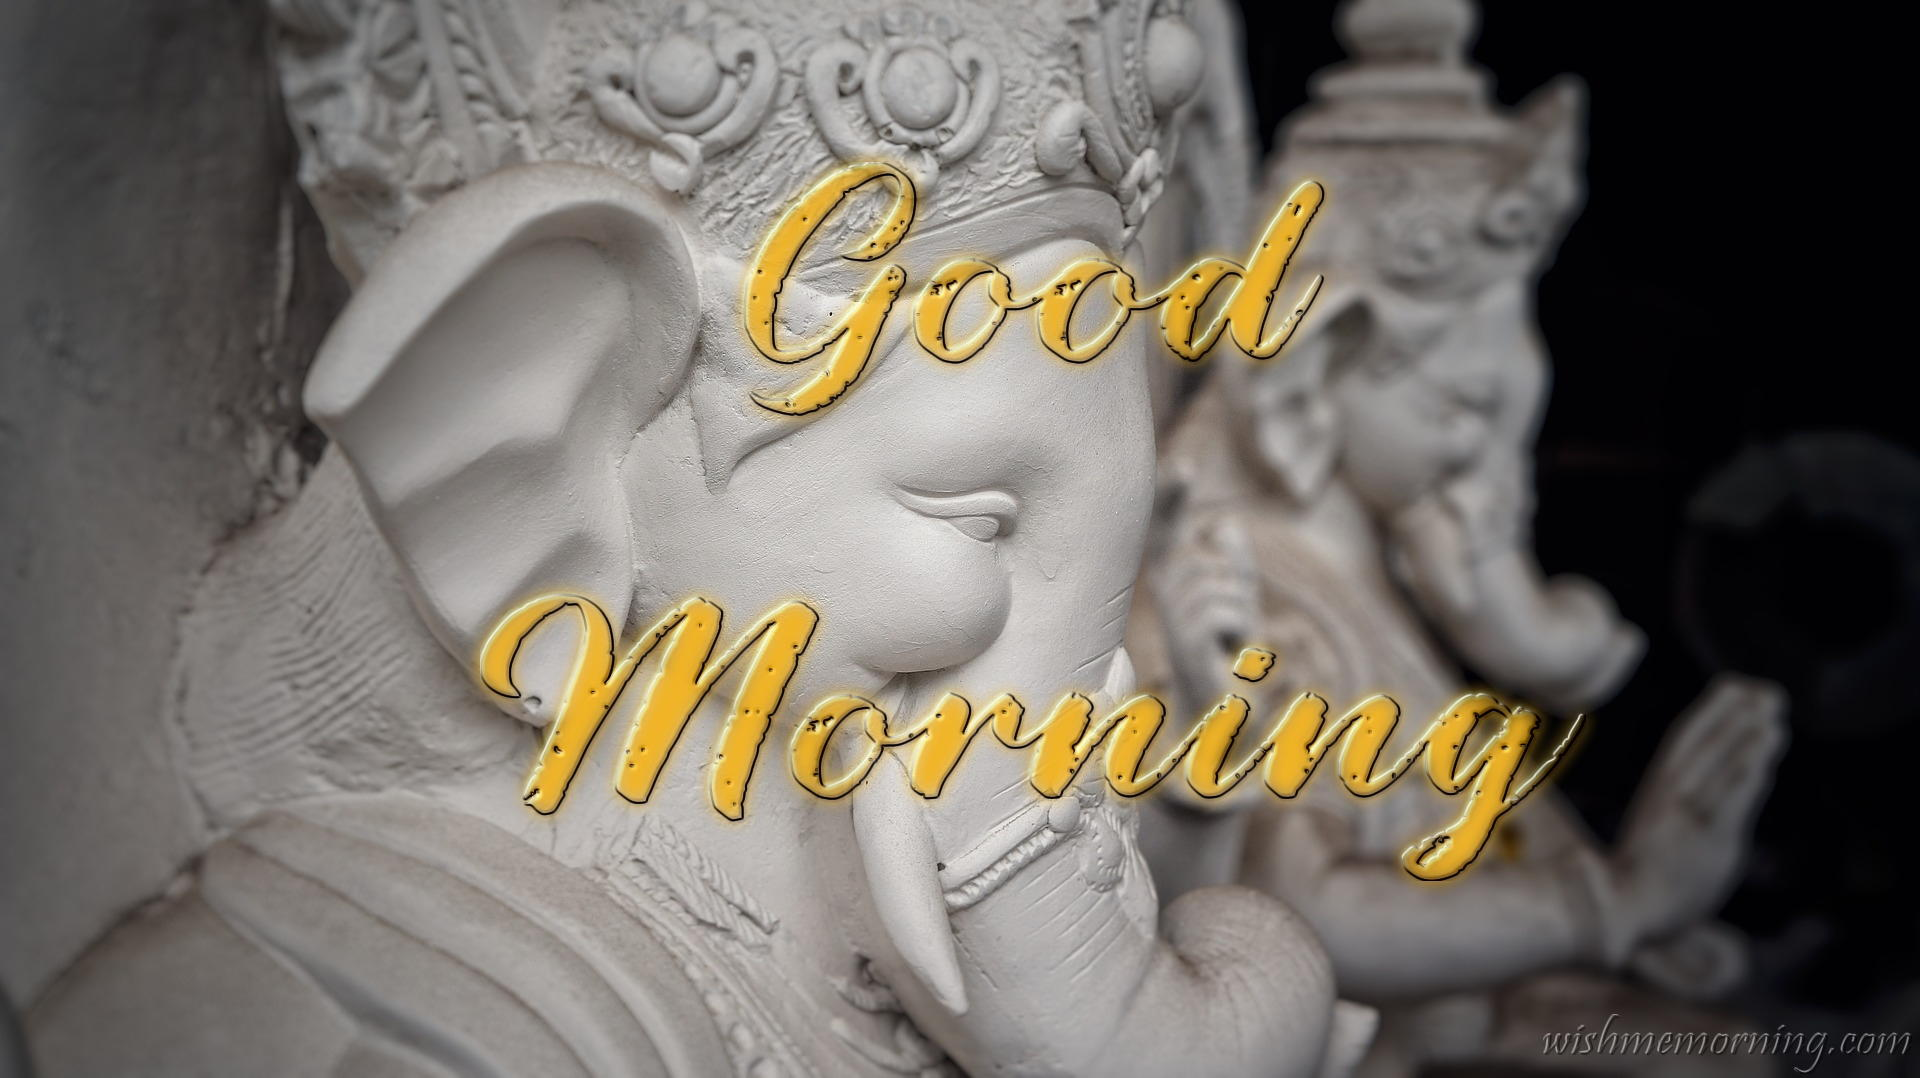 Golden Good Morning Text Over Lord Ganesha Image